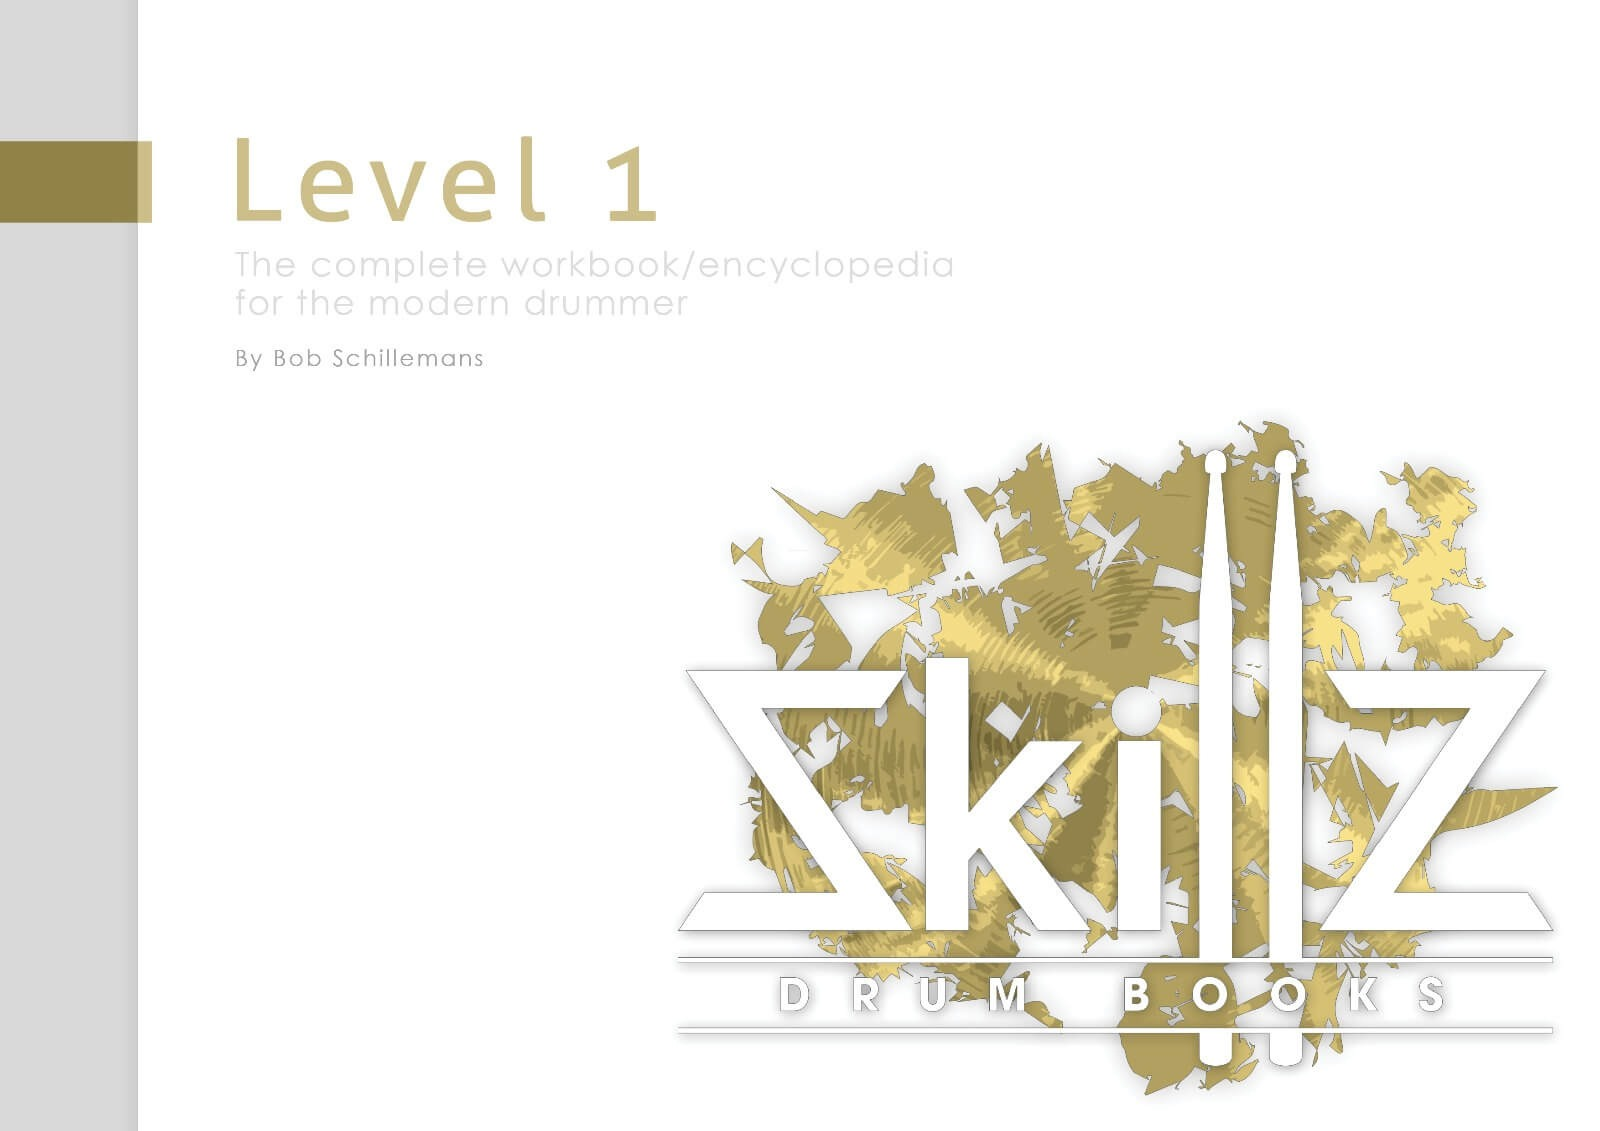 Skillz-Drum-Books-Level-1-The-Complete-Workbook-Encyclopedia-For-The-Modern-Drummer-Cover